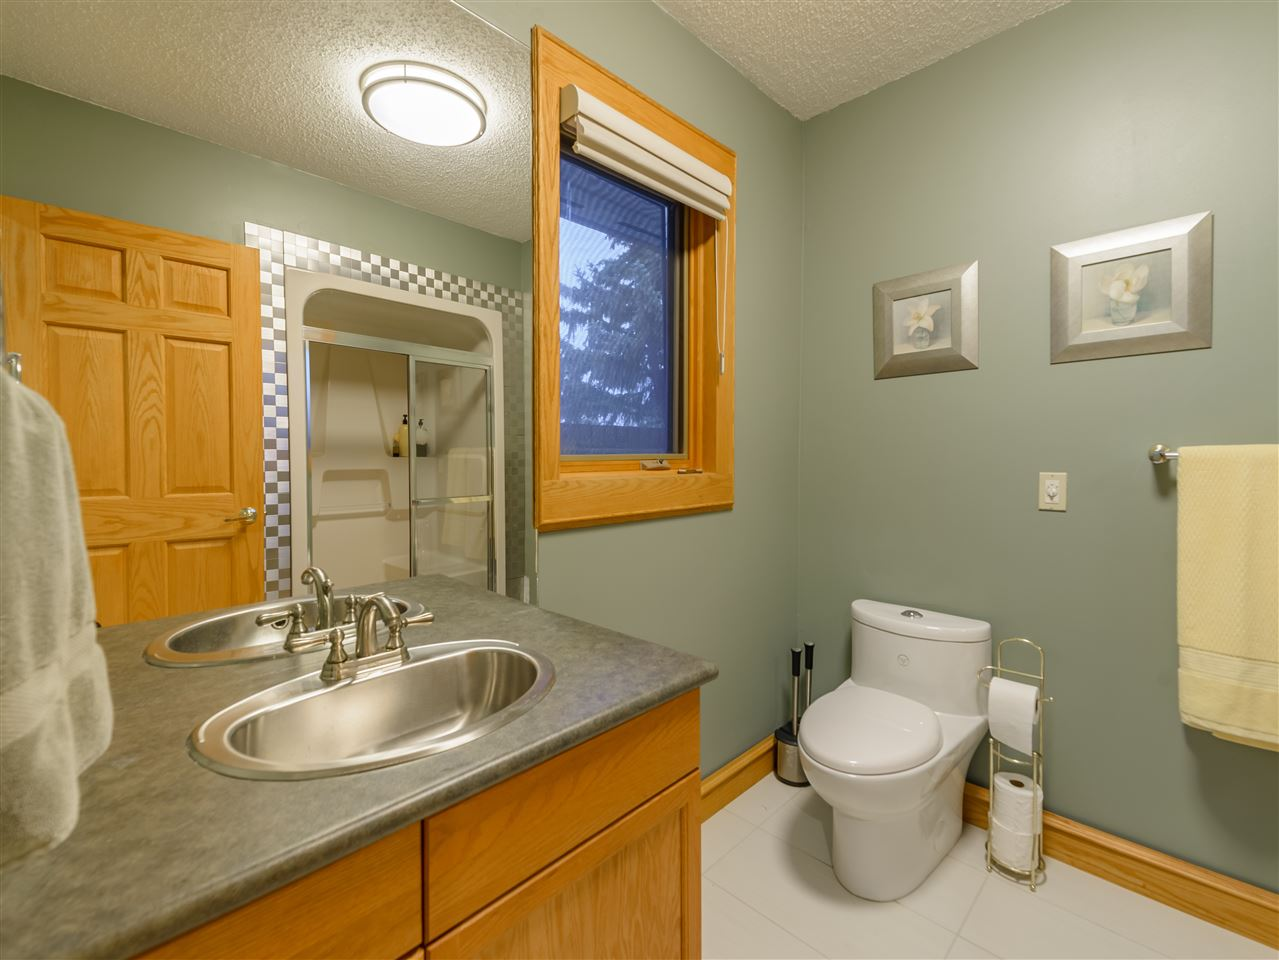 Photo 26: 2831 126 Street NW in Edmonton: Zone 16 House for sale : MLS® # E4061665